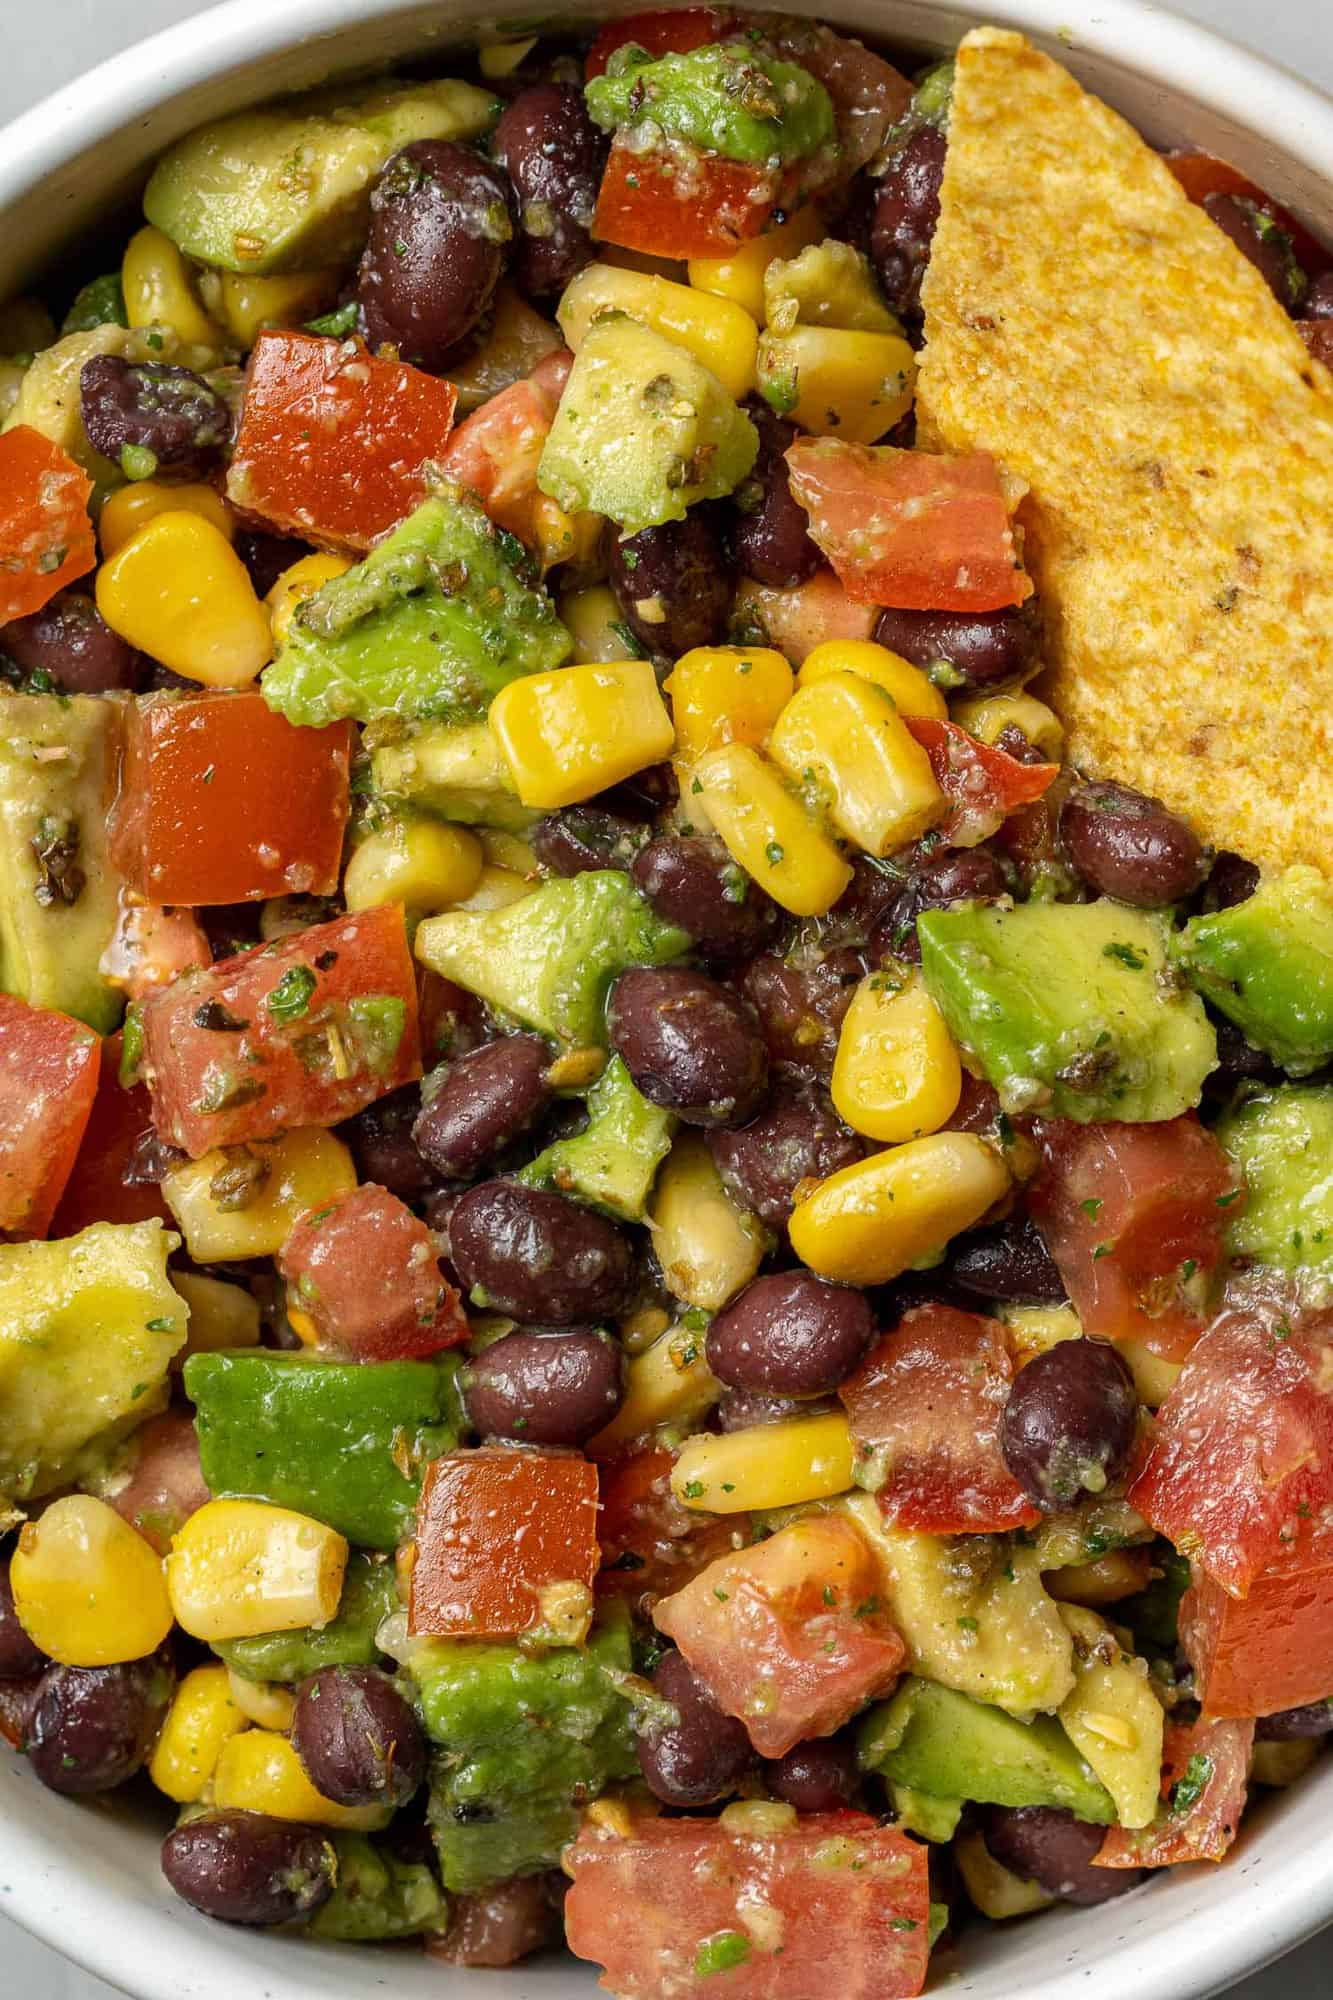 Close up view of salad with black beans, avocado, corn, tomatoes.